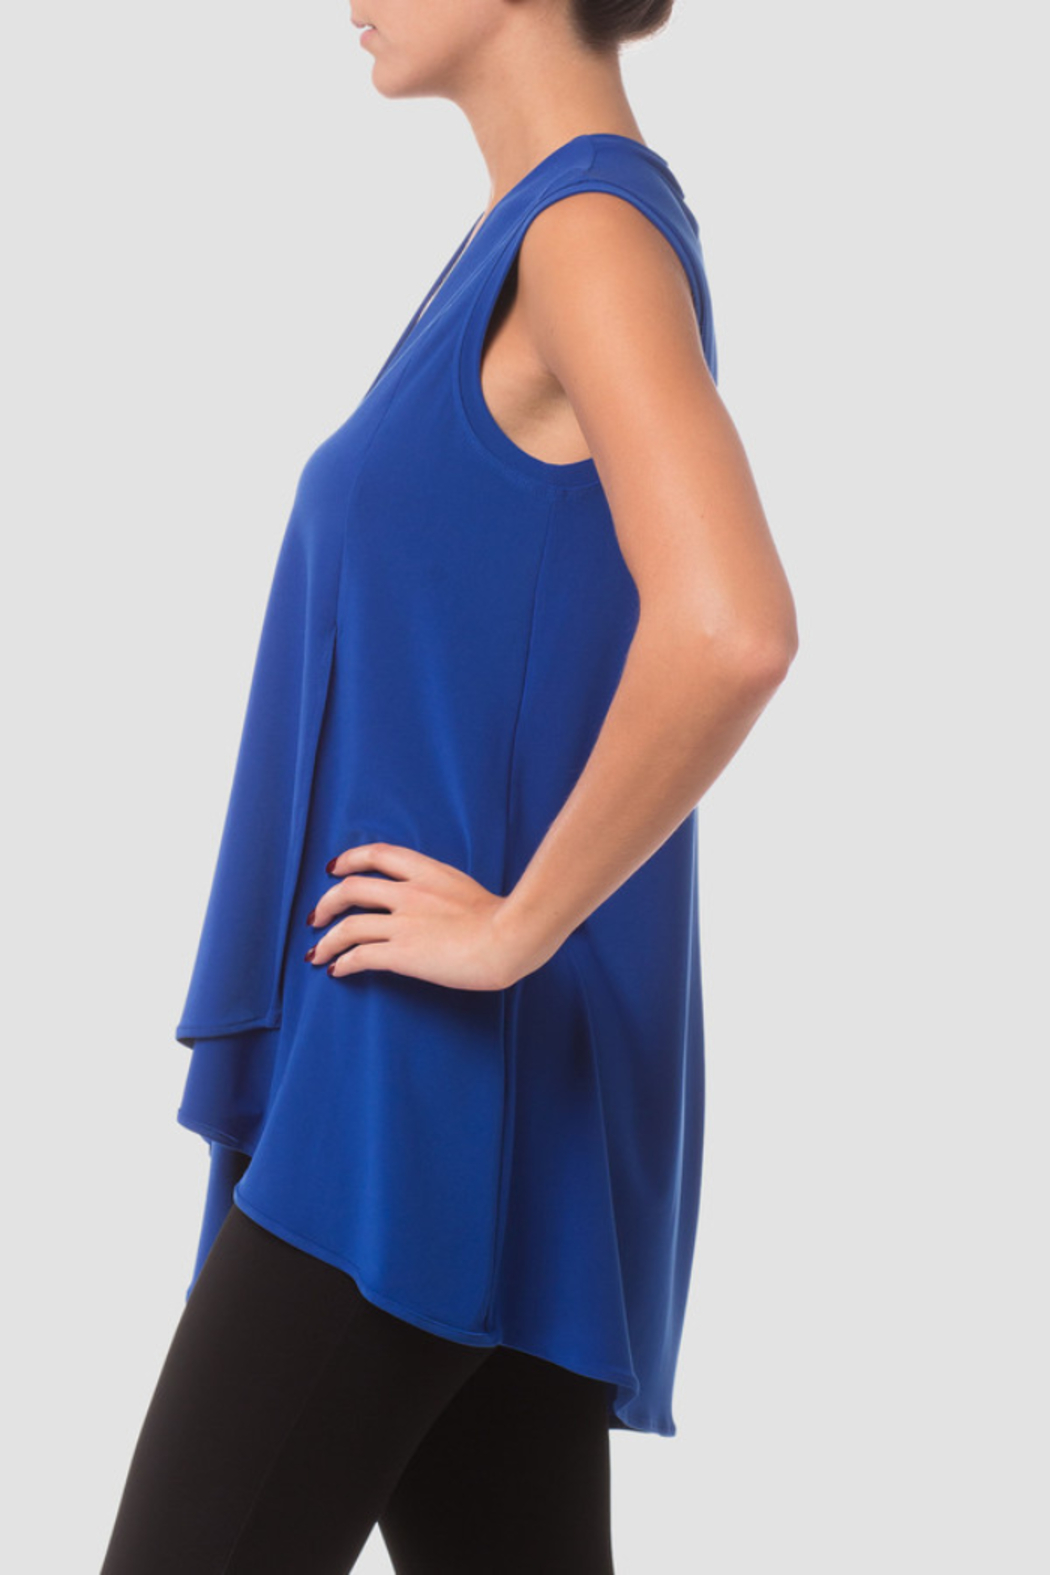 Joseph Ribkoff  Sleeveless Tunic, loose fit with a v-neck and wrap-style handkerchief hemline. - Side Cropped Image